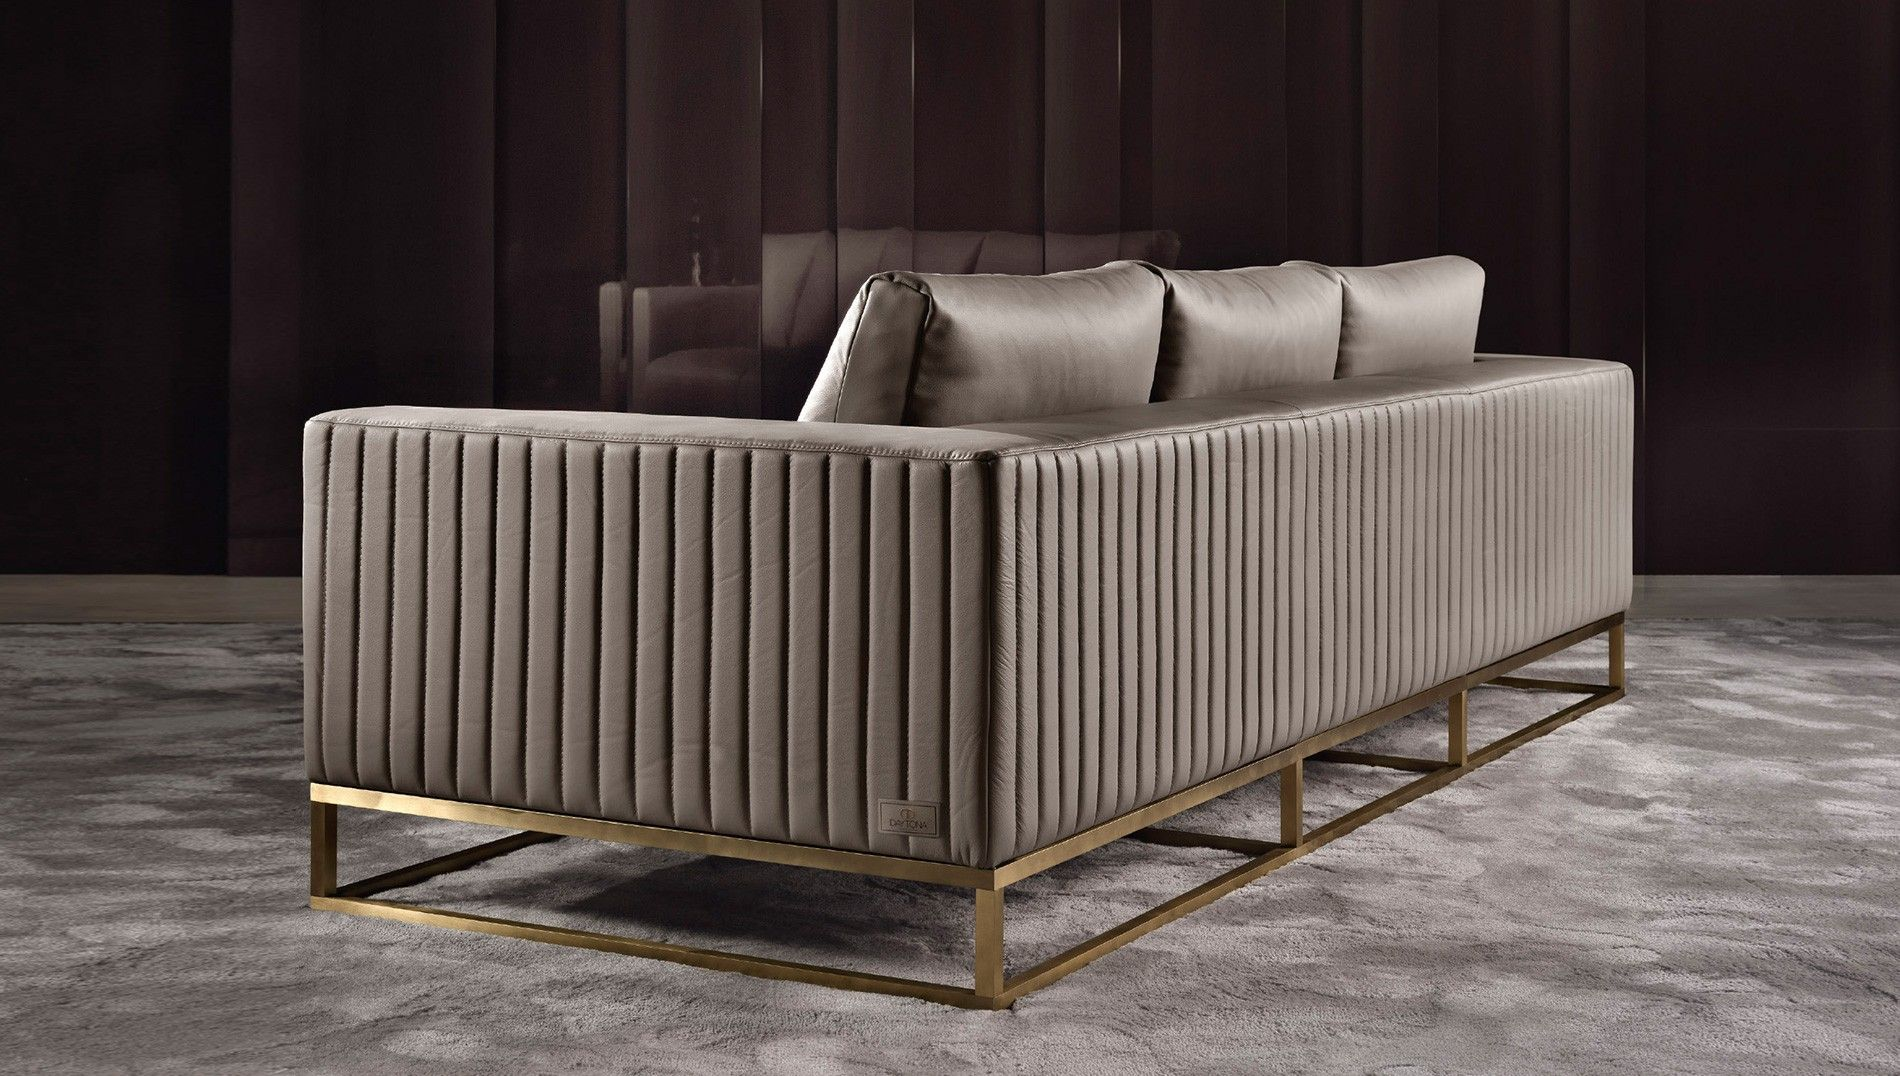 Shop Signorini Coco Martin Sofa At Luxdeco Discover Luxury Collections From The World S Leading Lighting Brands Free Uk Delivery Sofa Design Sofa Furniture Luxury Sofa